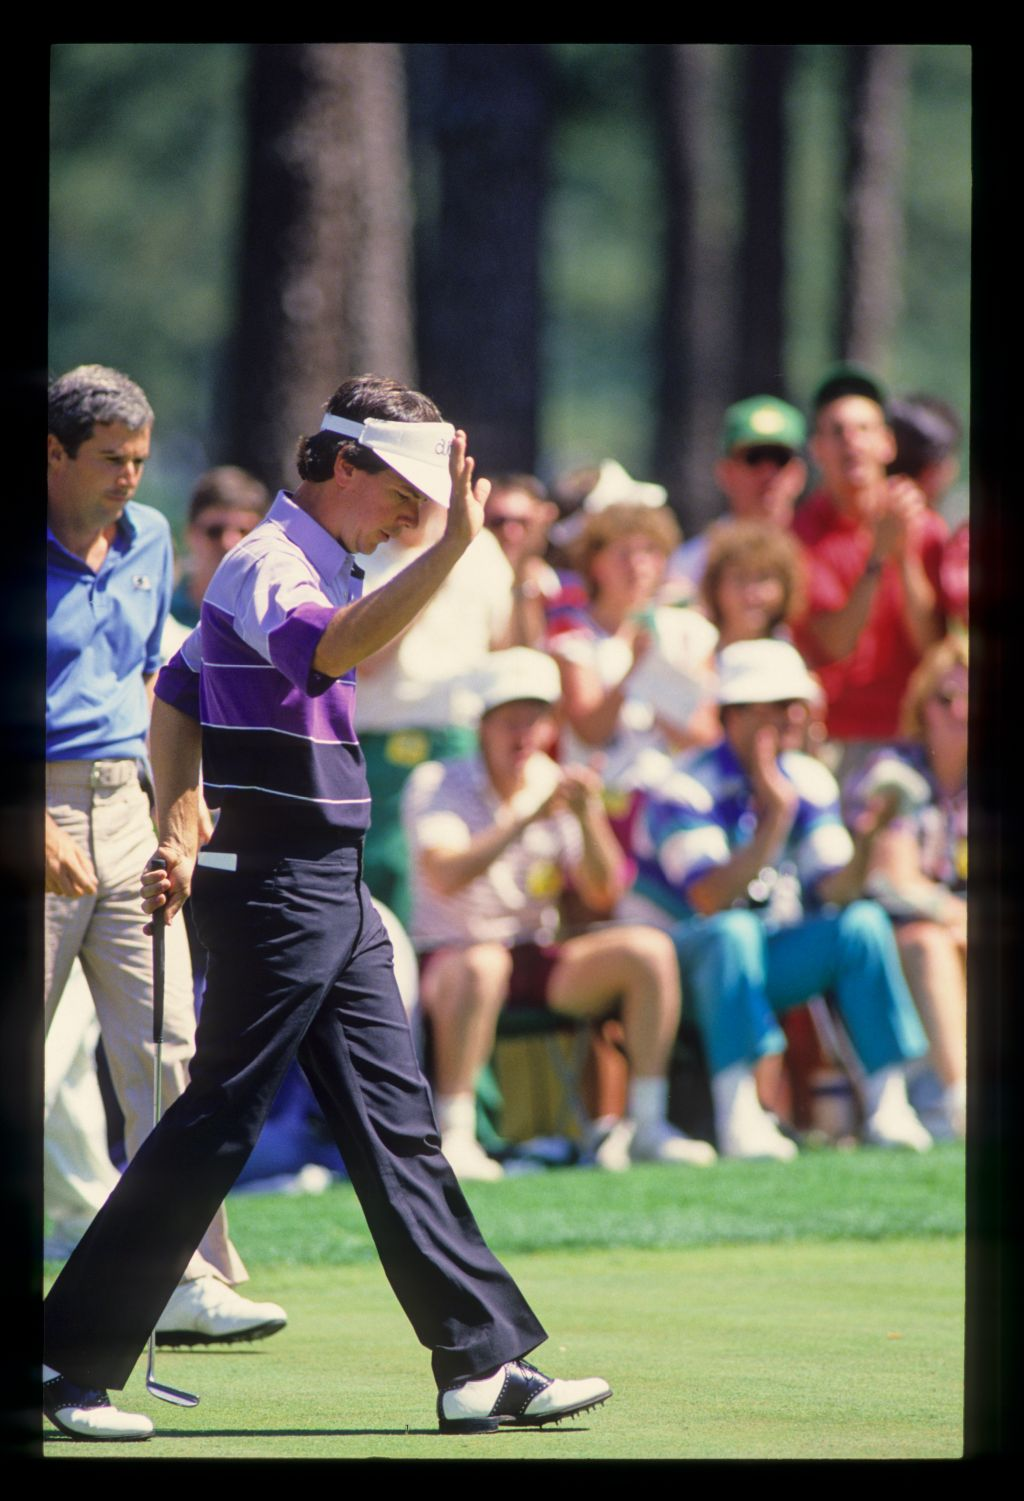 Larry Mize acknowledging the crowd on his way to winning the 1987 Masters